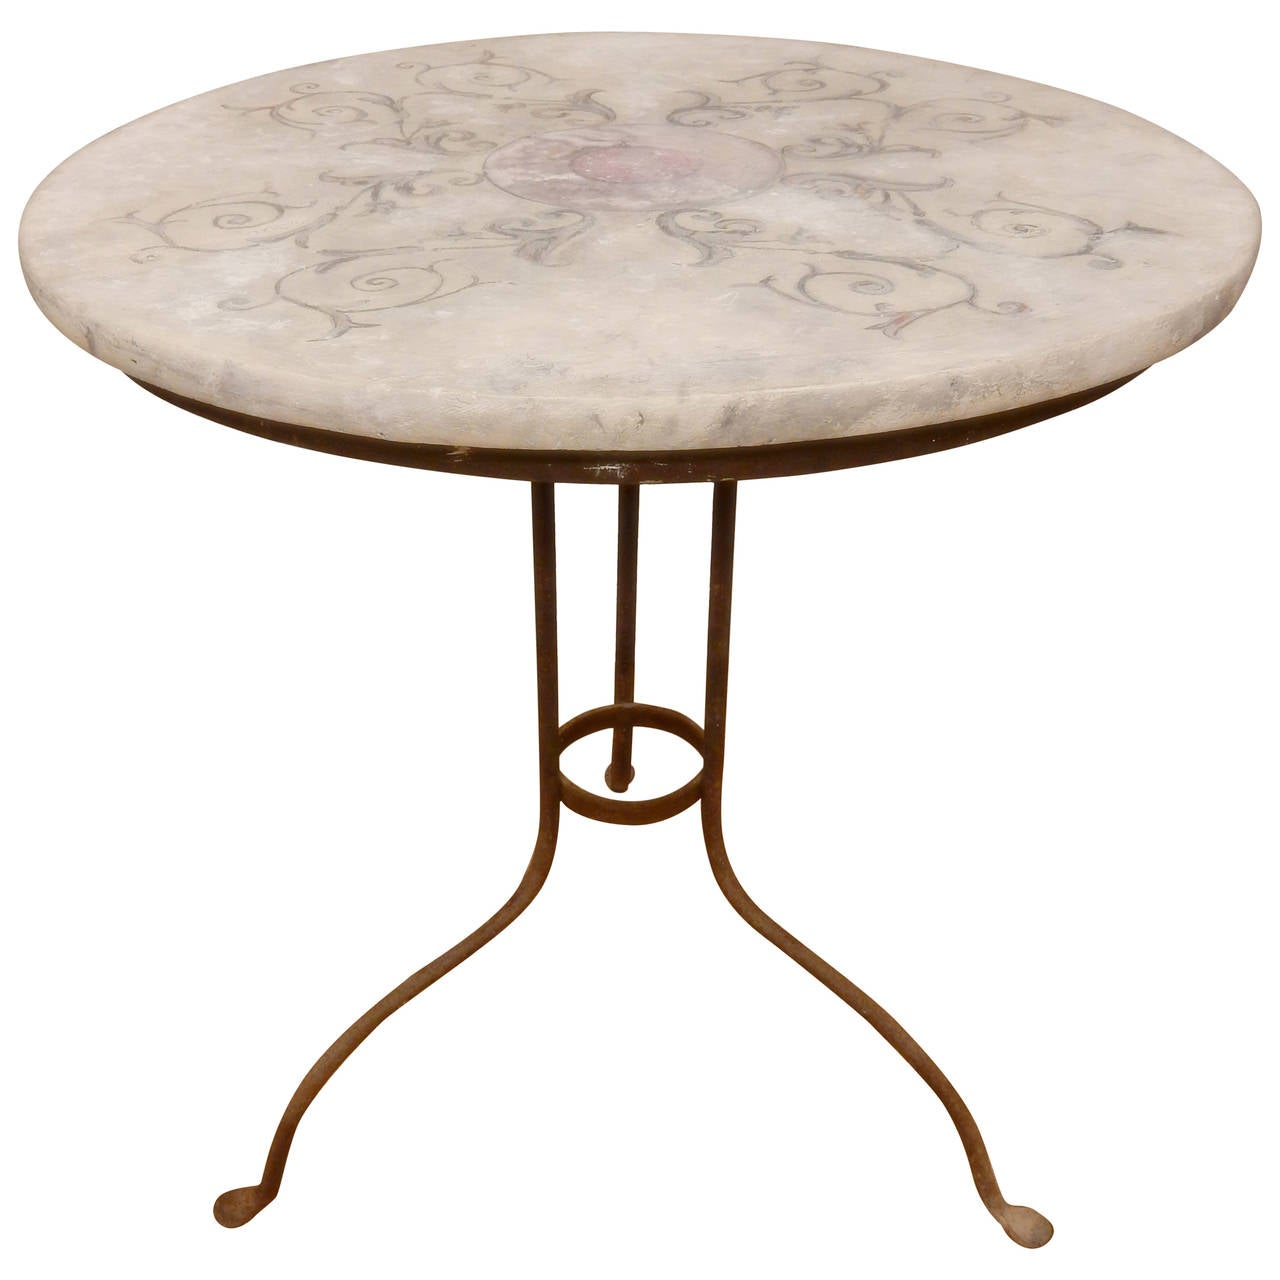 Faux marble top on iron base table at 1stdibs